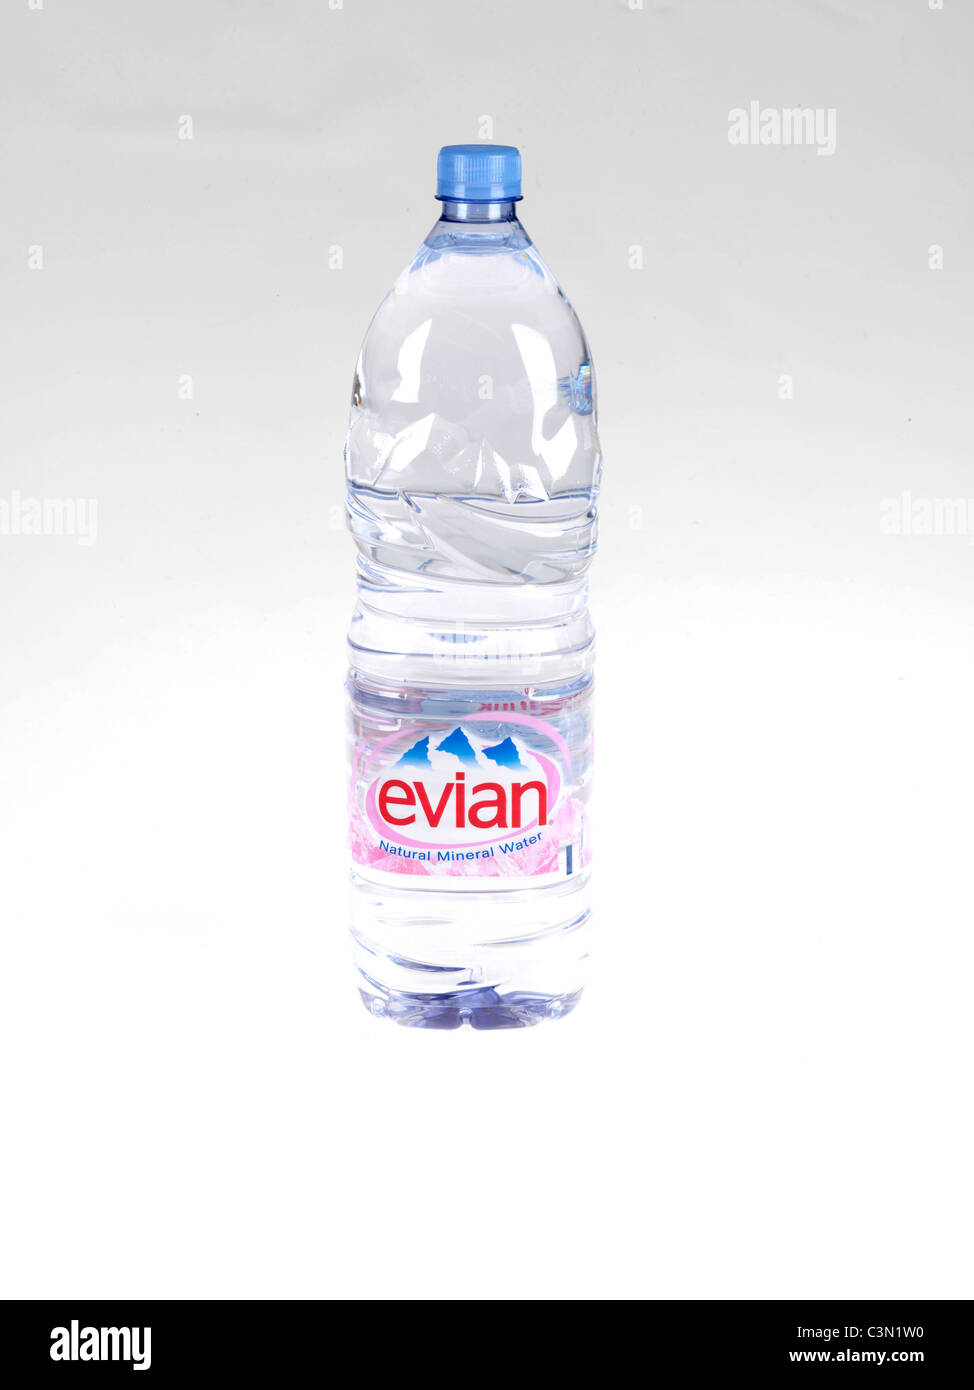 Bottle Evian Water - Stock Image